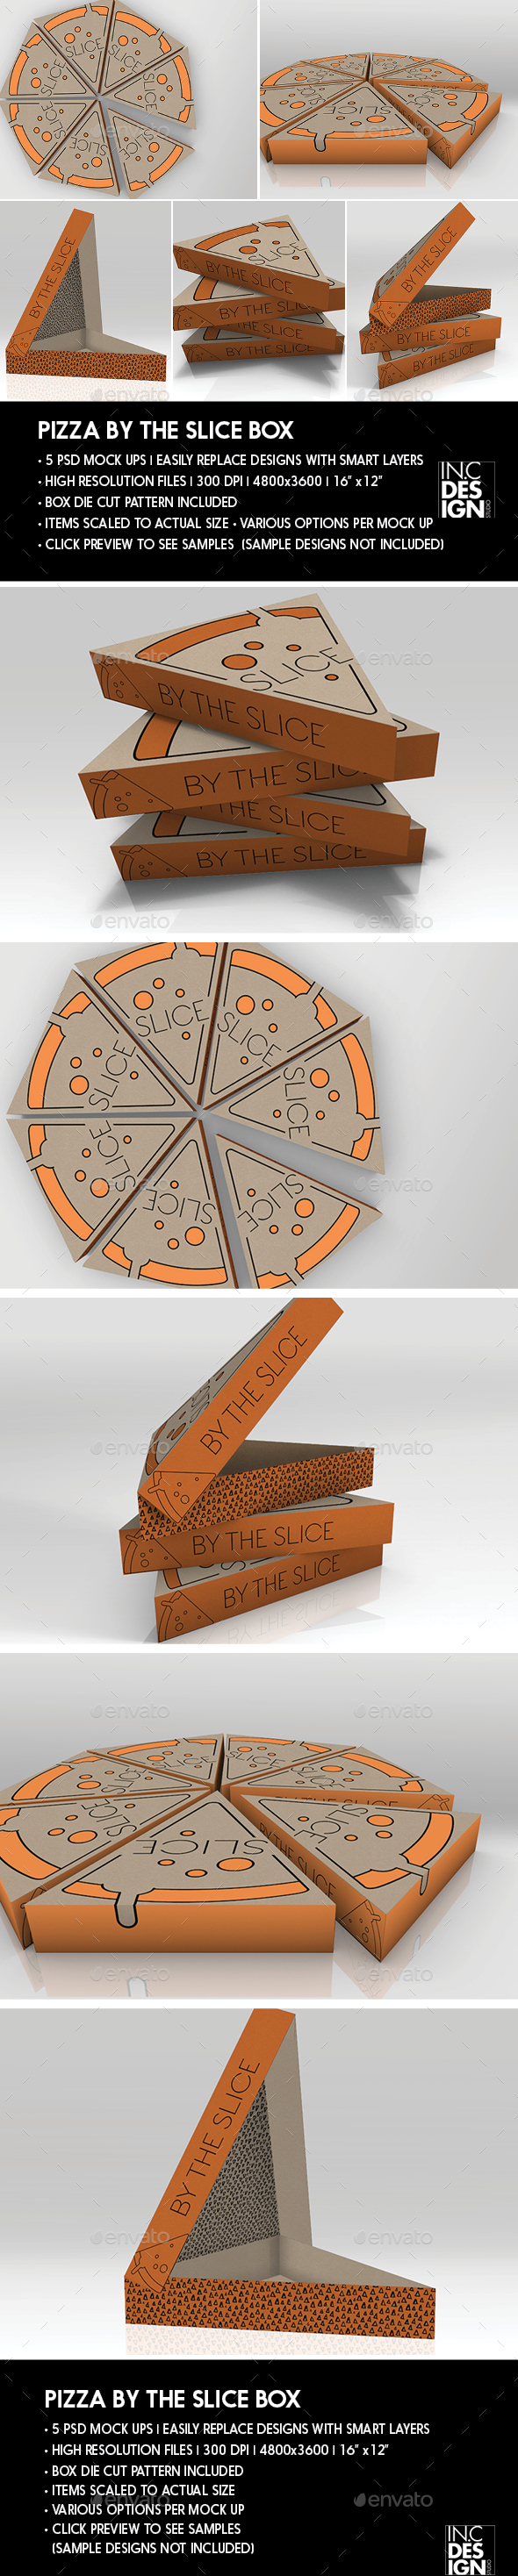 Packaging Mock Up Pizza Slice Box